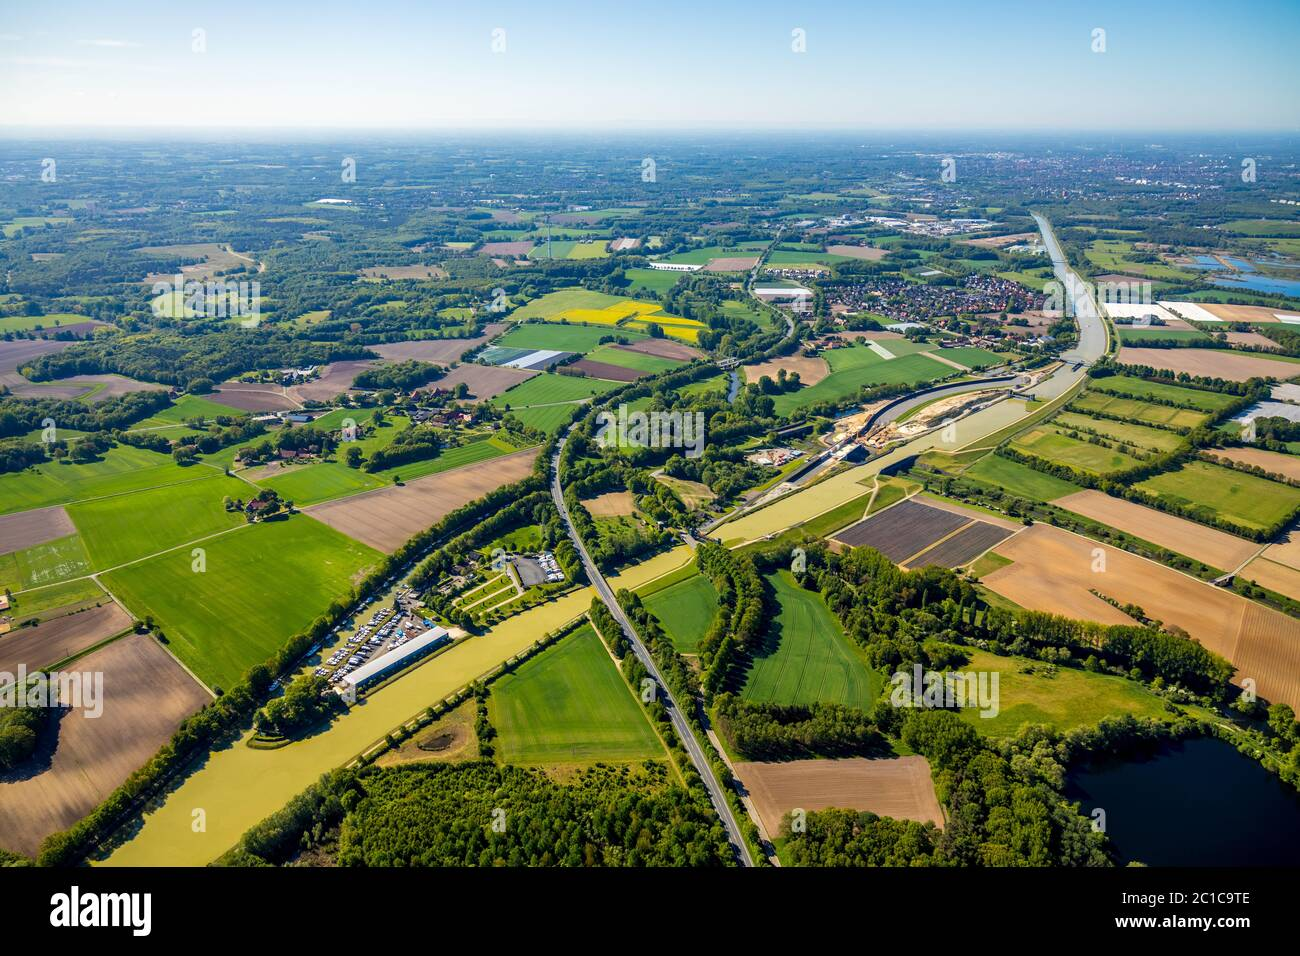 Aerial photograph, renewal of the canal overpass, Dortmund-Ems-Canal crossing of the Ems, river Ems, Greven, district Steinfurt, Münsterland, North Rh Stock Photo